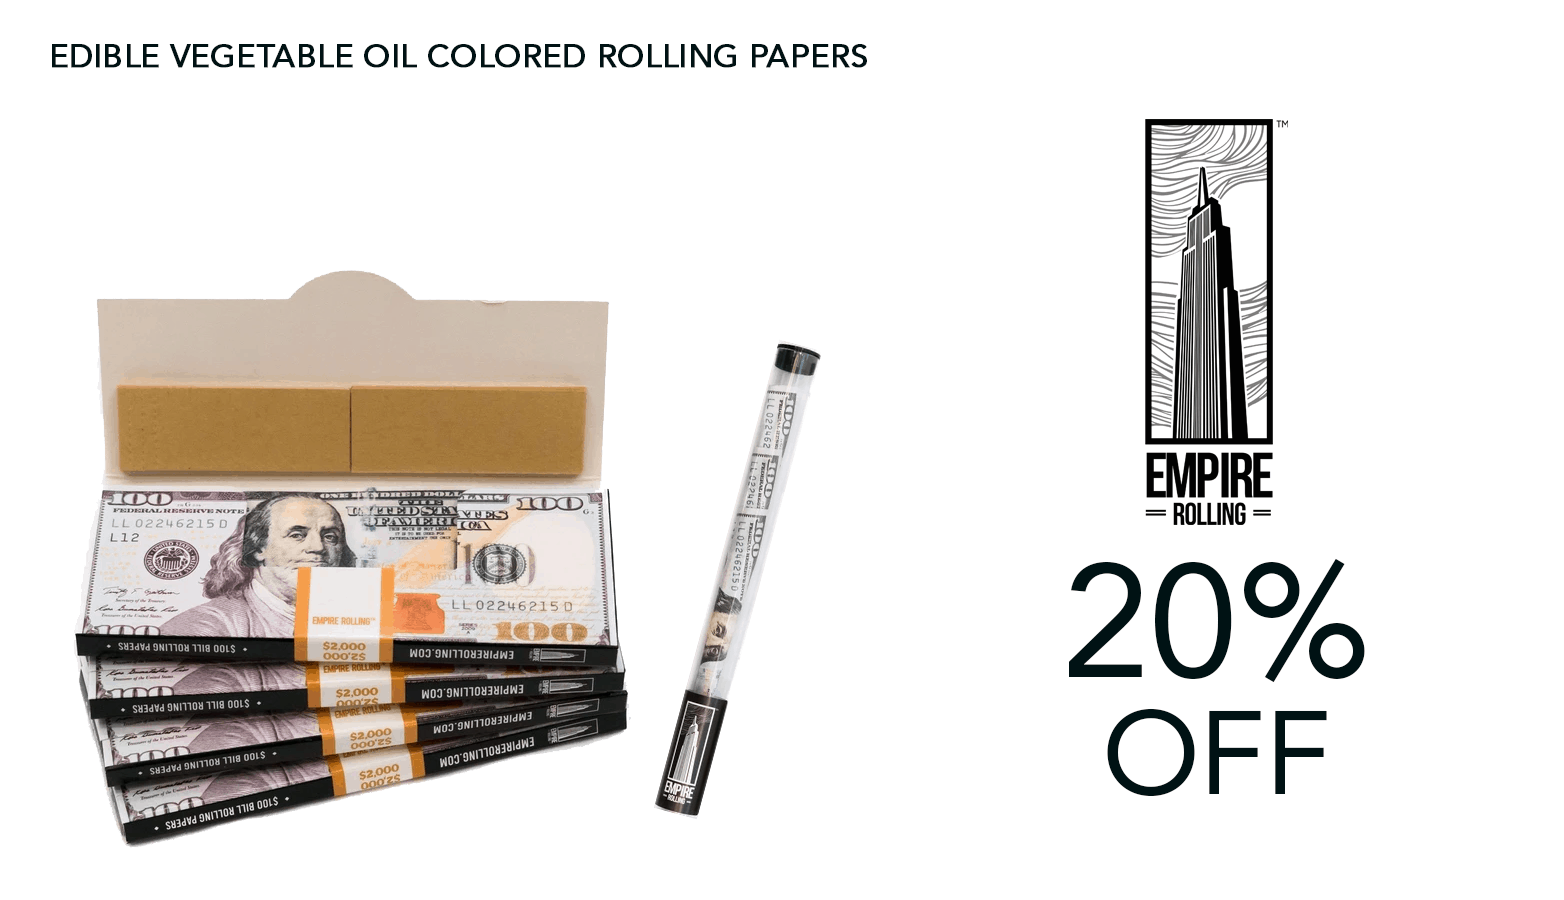 Empire Rolling CBD Coupon Code Website